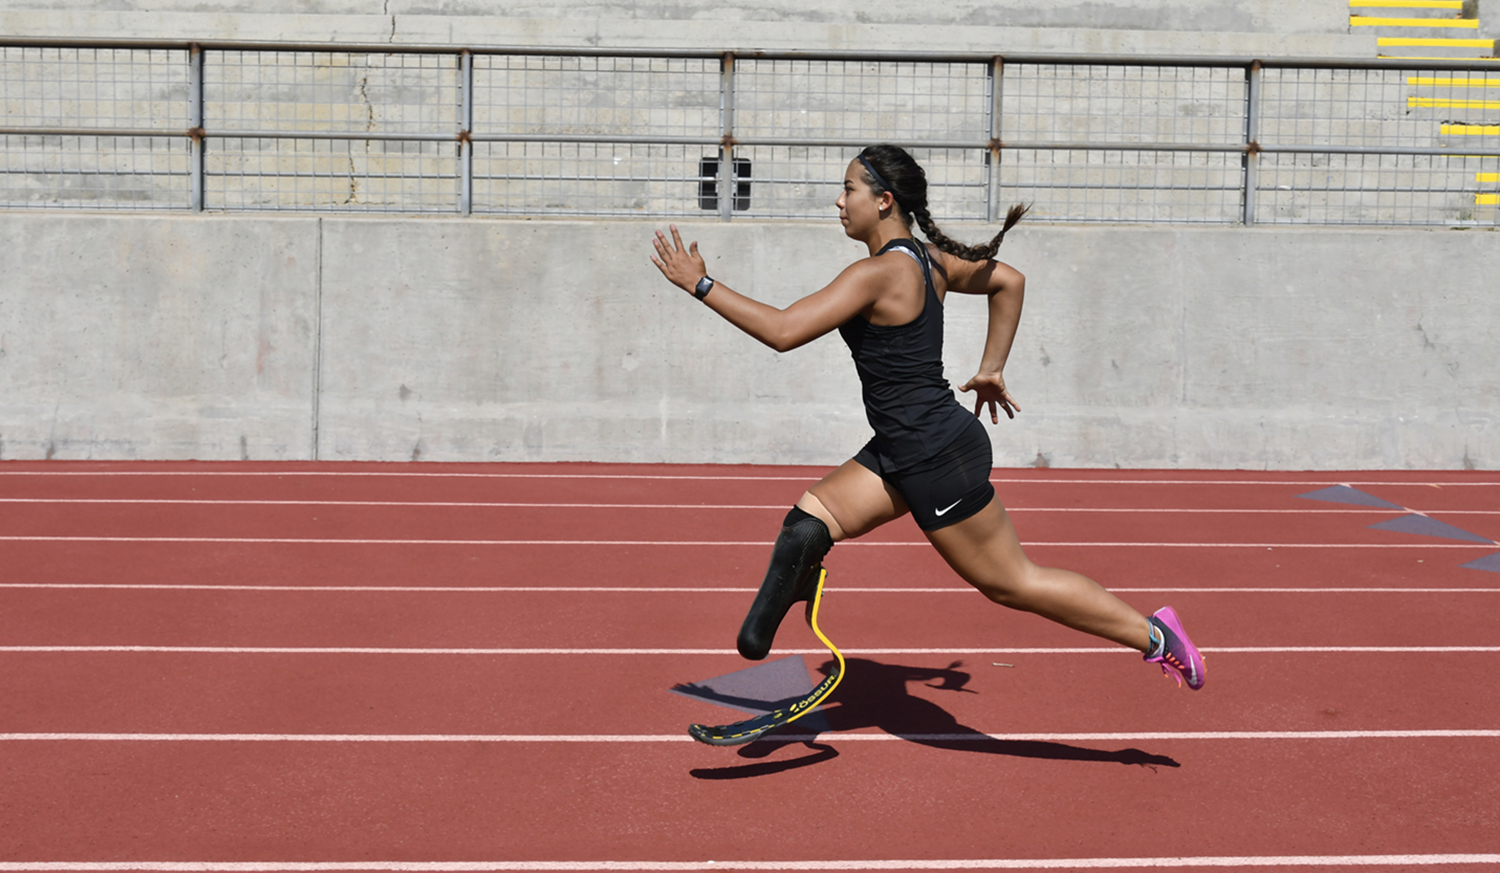 CAF athlete Ella Rodriguez sprinting on the track